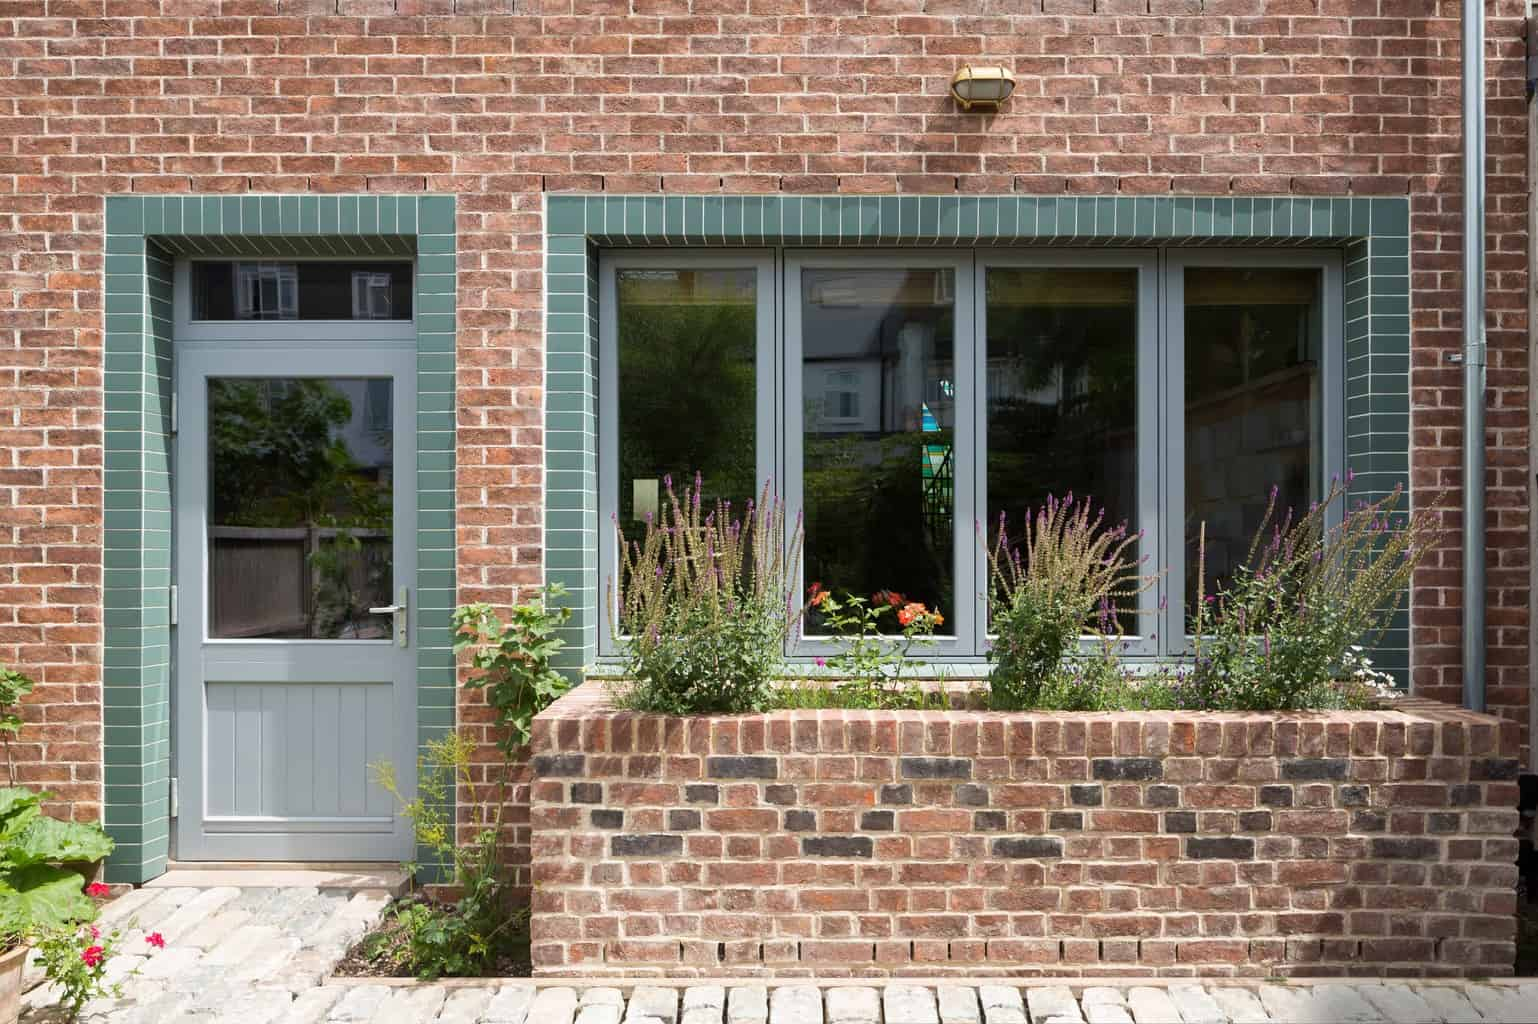 PERFORMANCE triple glazed timber windows and door at The Orchard - Arts and Crafts low energy newbuild - photograph Adam Scott